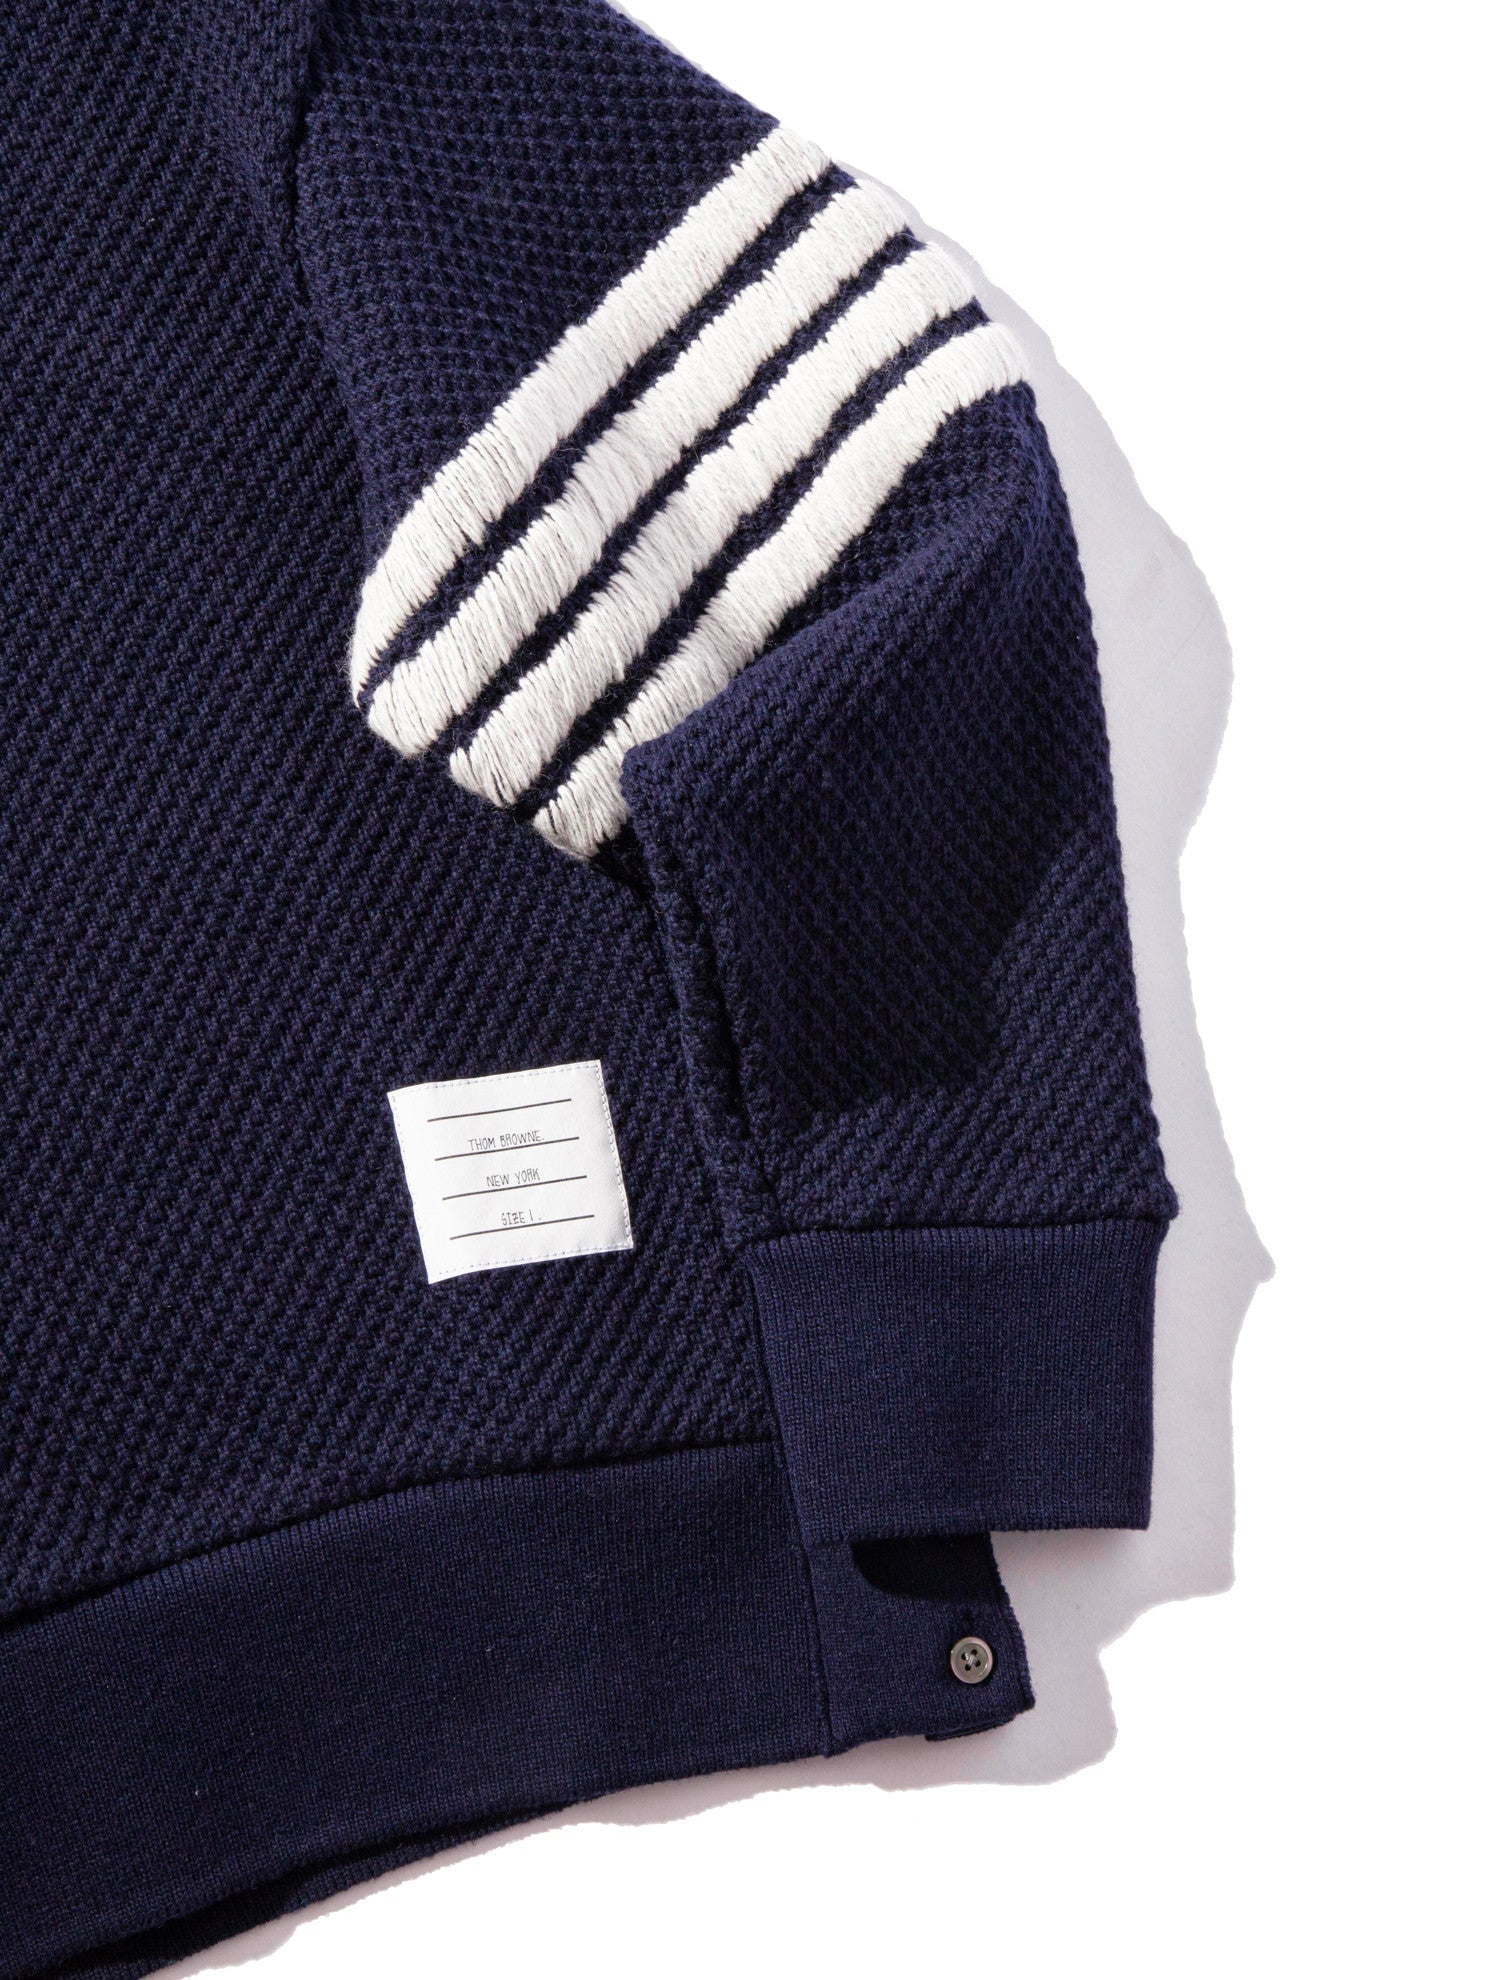 Navy Wide Shoulder Crew Neck Sweatshirt (Hand Embroidered 4 Bar Stripe In Chunky Pique) 11